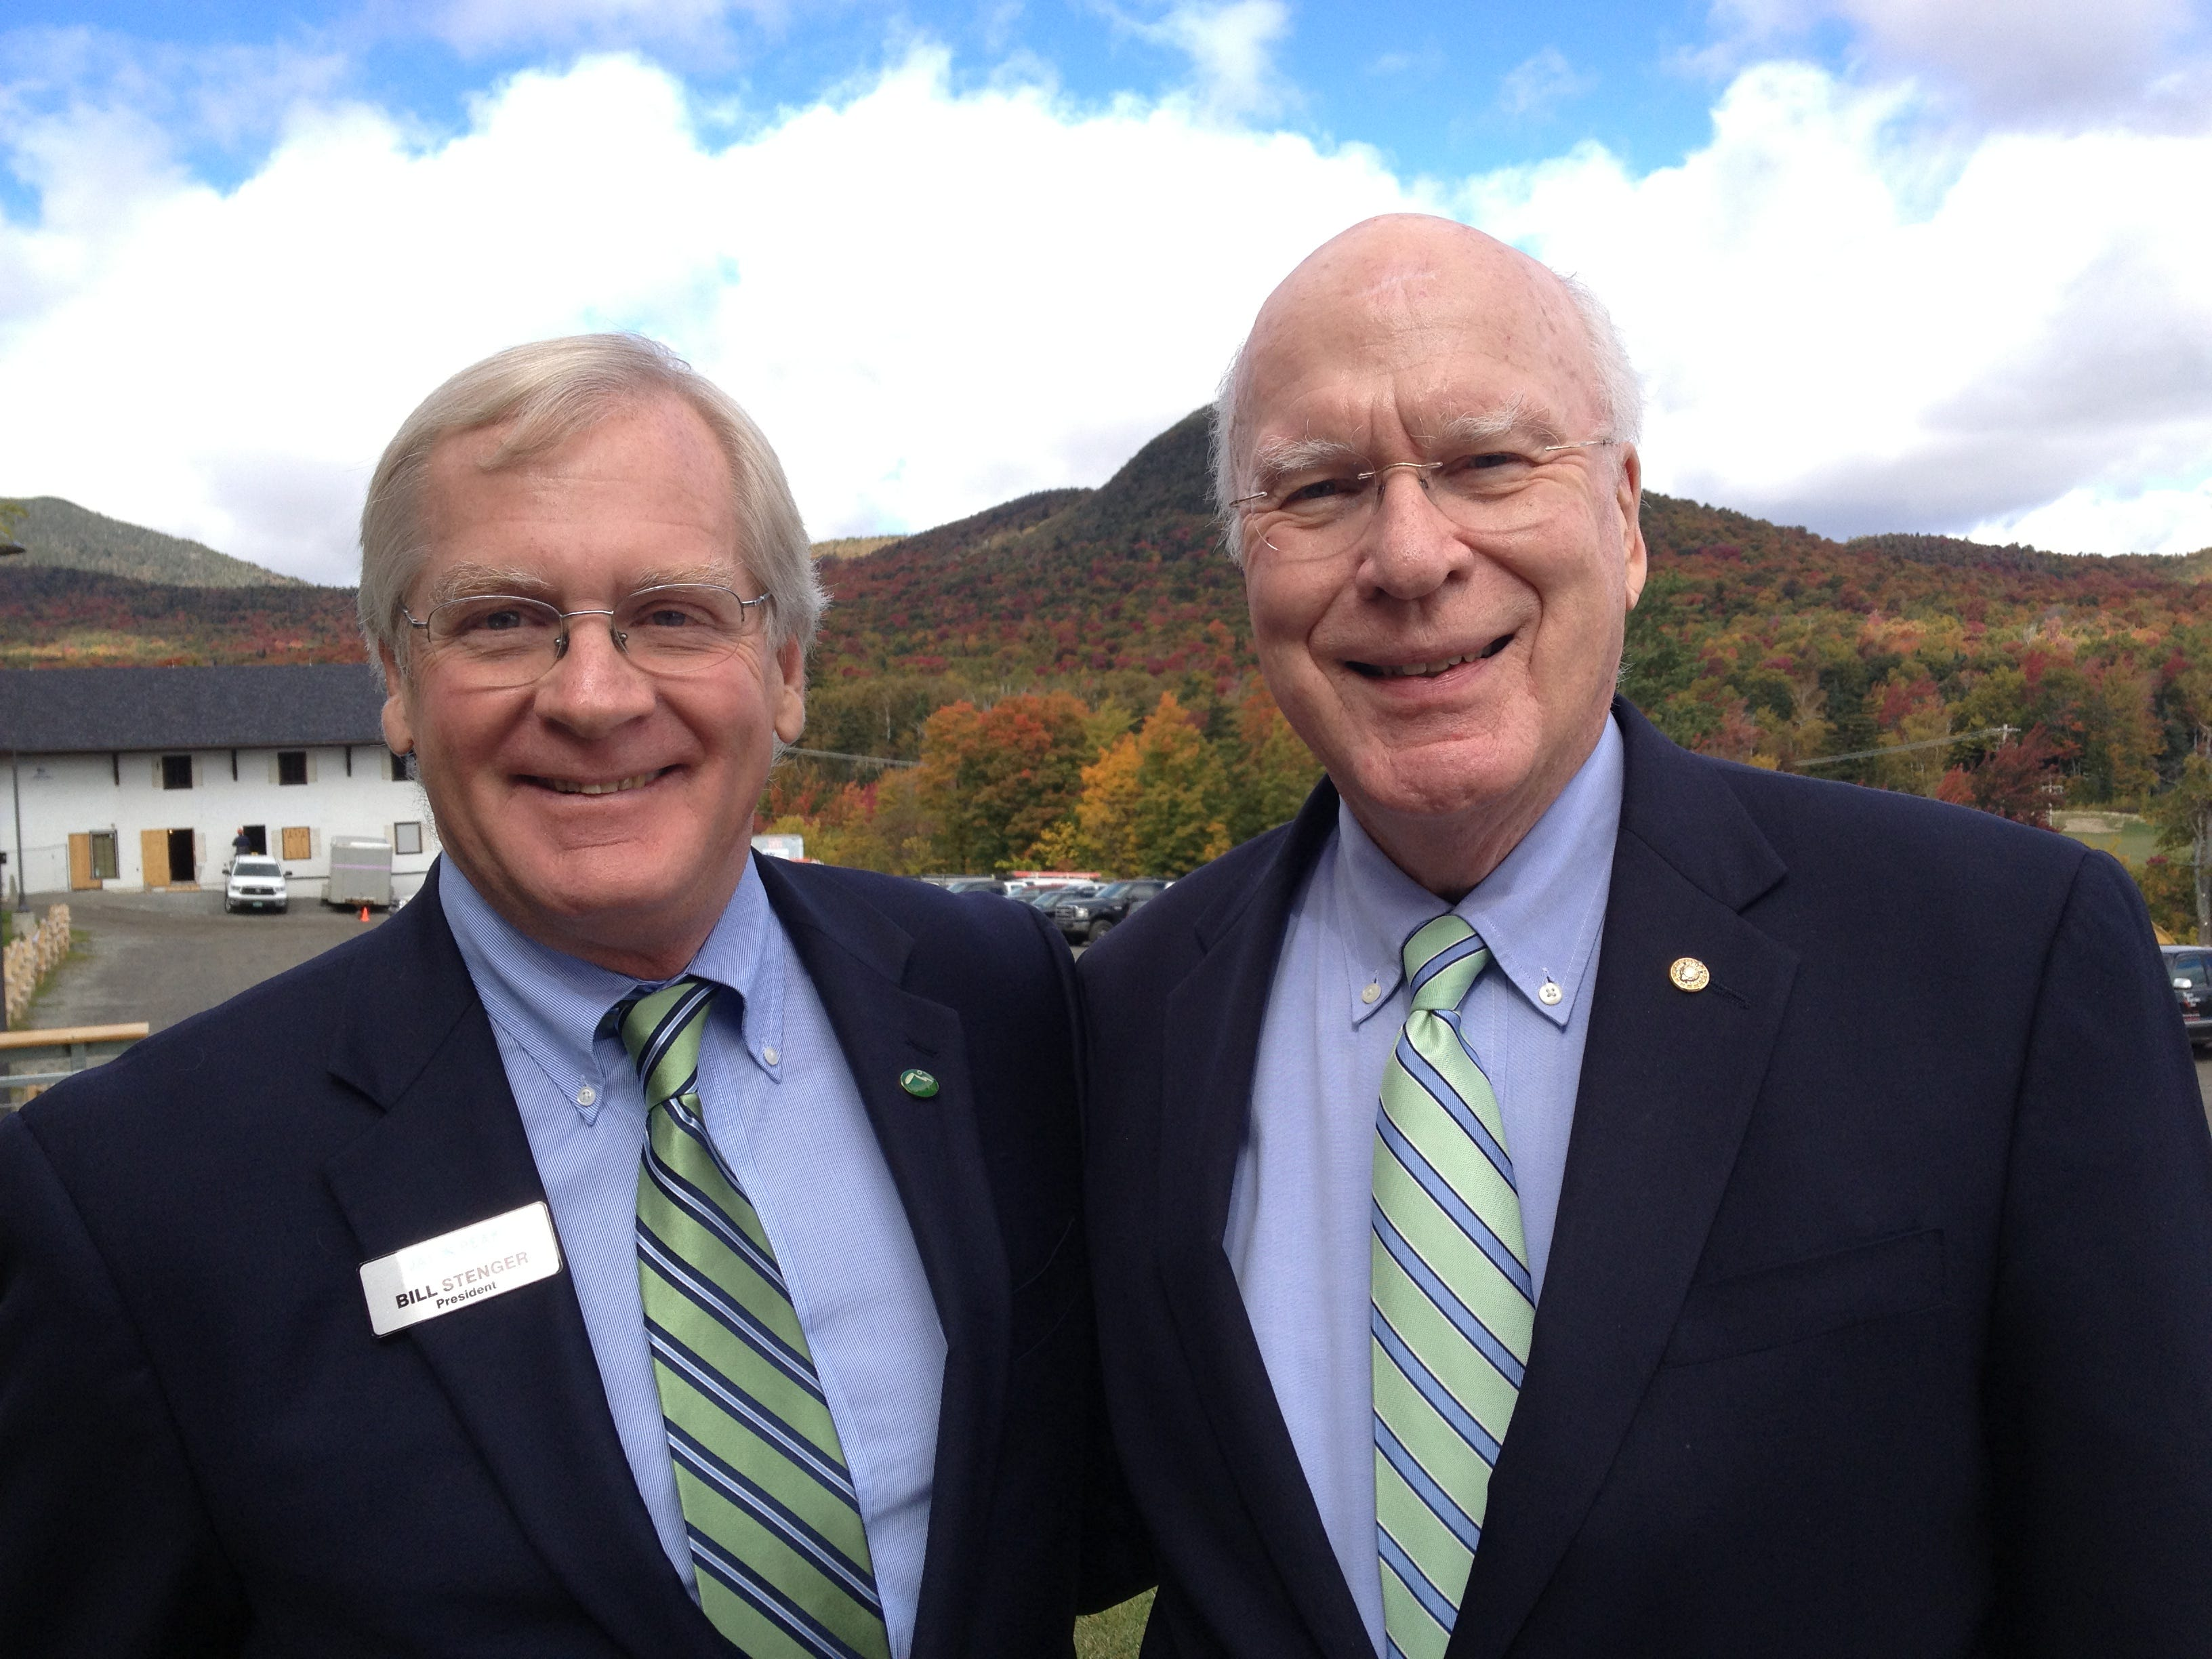 Bill Stenger, left, owner of Jay Peak Resort, and U.S. Sen. Patrick Leahy, D-Vt., pose on Sept. 27, 2012, following the announcement of a $500 million public/private partnership called the Northeast Kingdom Economic Revitalization Initiative. The project includes expansions at Jay Peak and Burke Mountain Resort, revitalization of downtown Newport and expansion of private industry in the fields of biotechnology and window manufacturing.